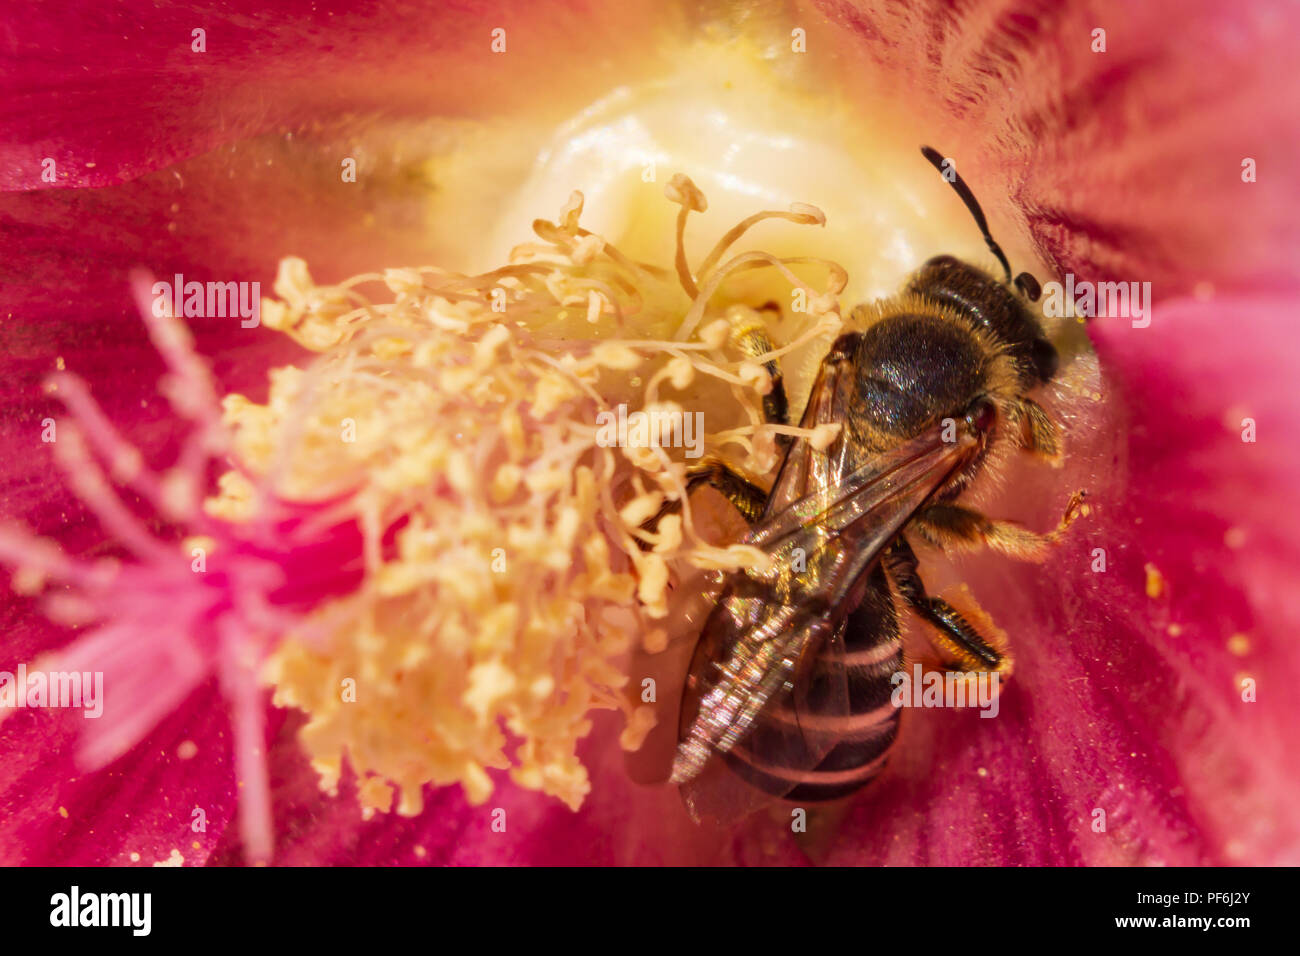 Honey Bee  Apis mellifera feeding on nectar and collecting pollen on a hollyhocks Alcea flower, June 2018 - Stock Image